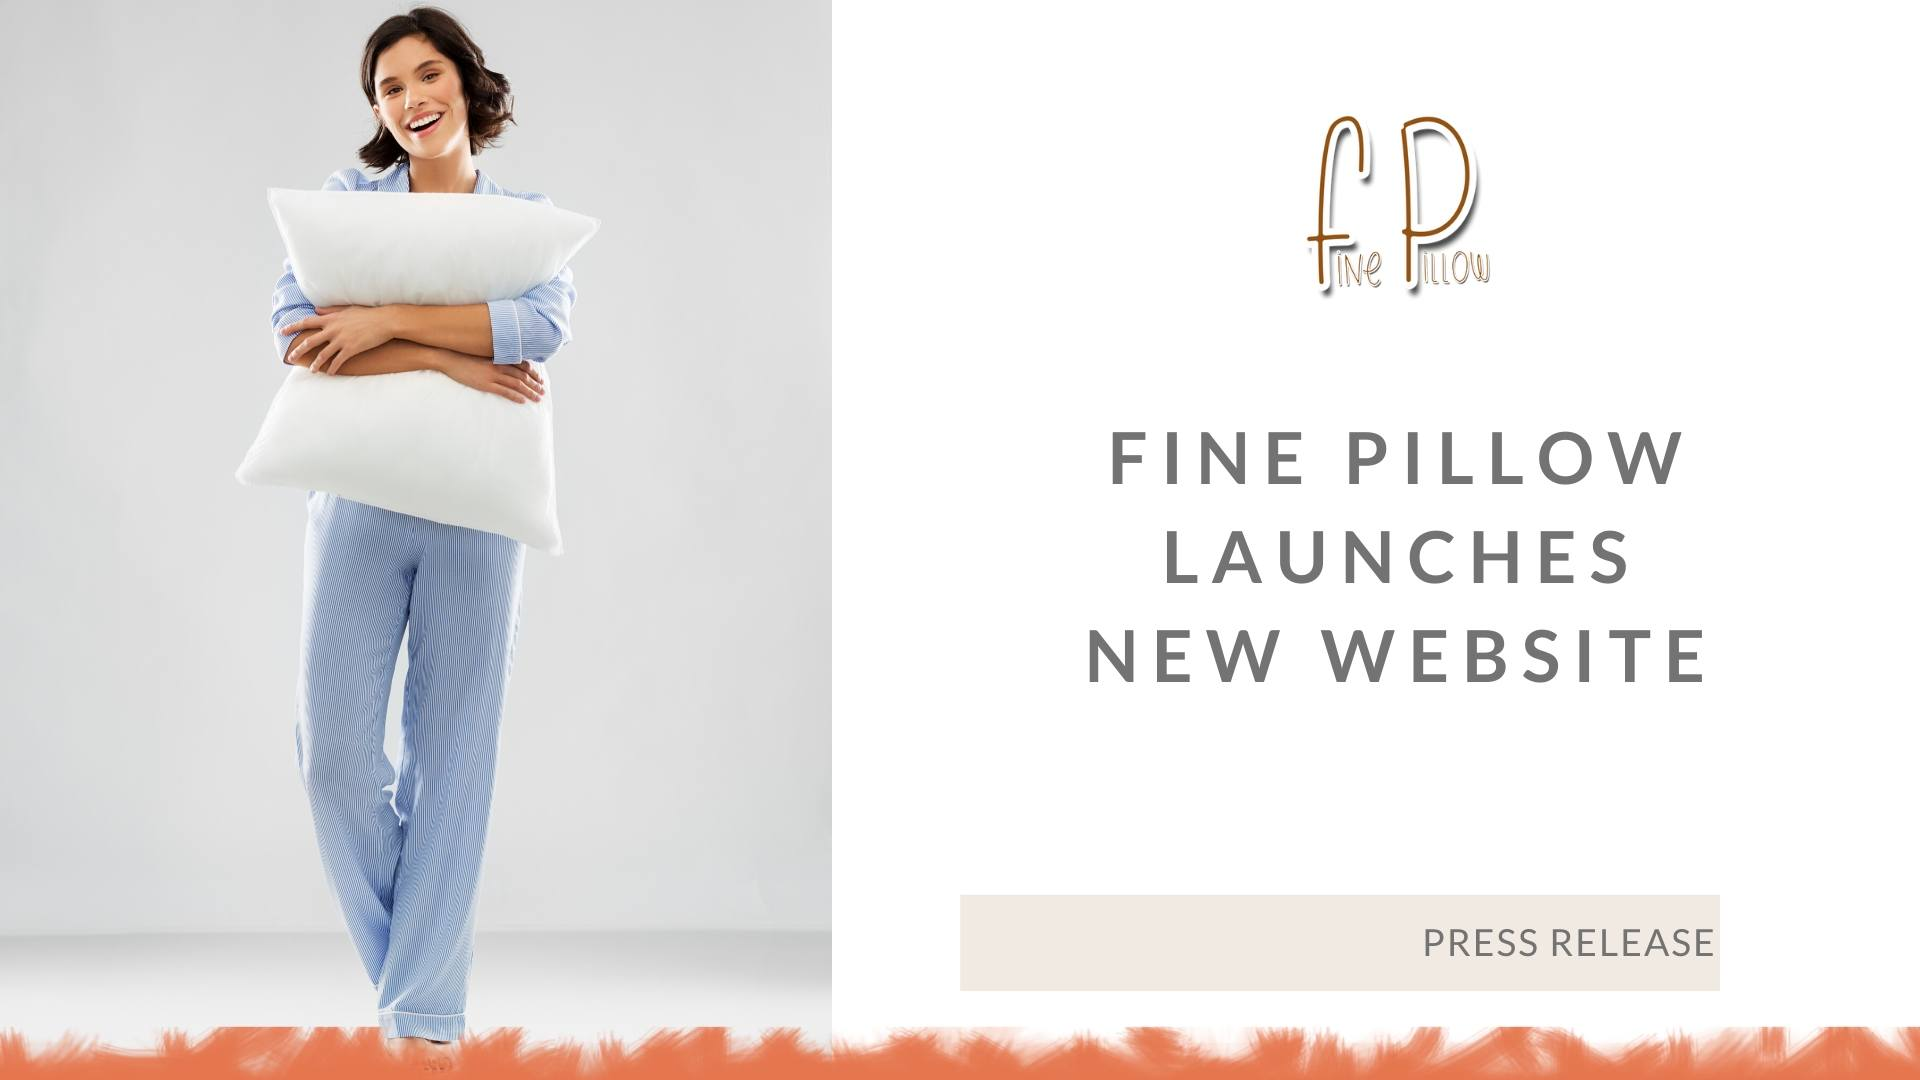 Press Release – Fine Pillow Launches New Website